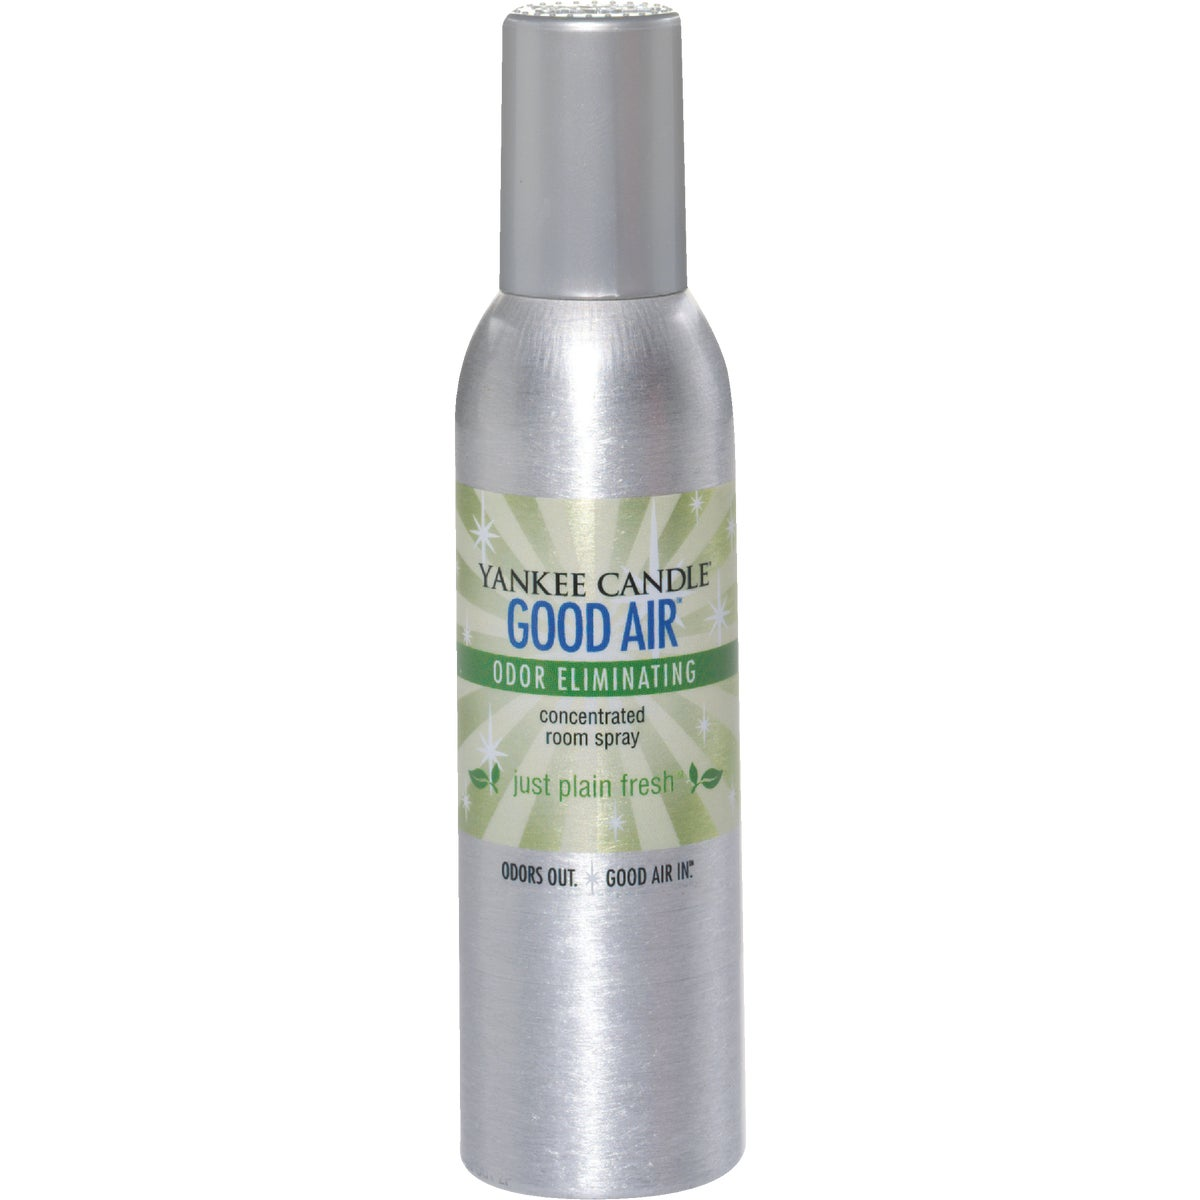 2OZ GOOD AIR ROOM SPRAY - 1201269 by Yankee Candle Co